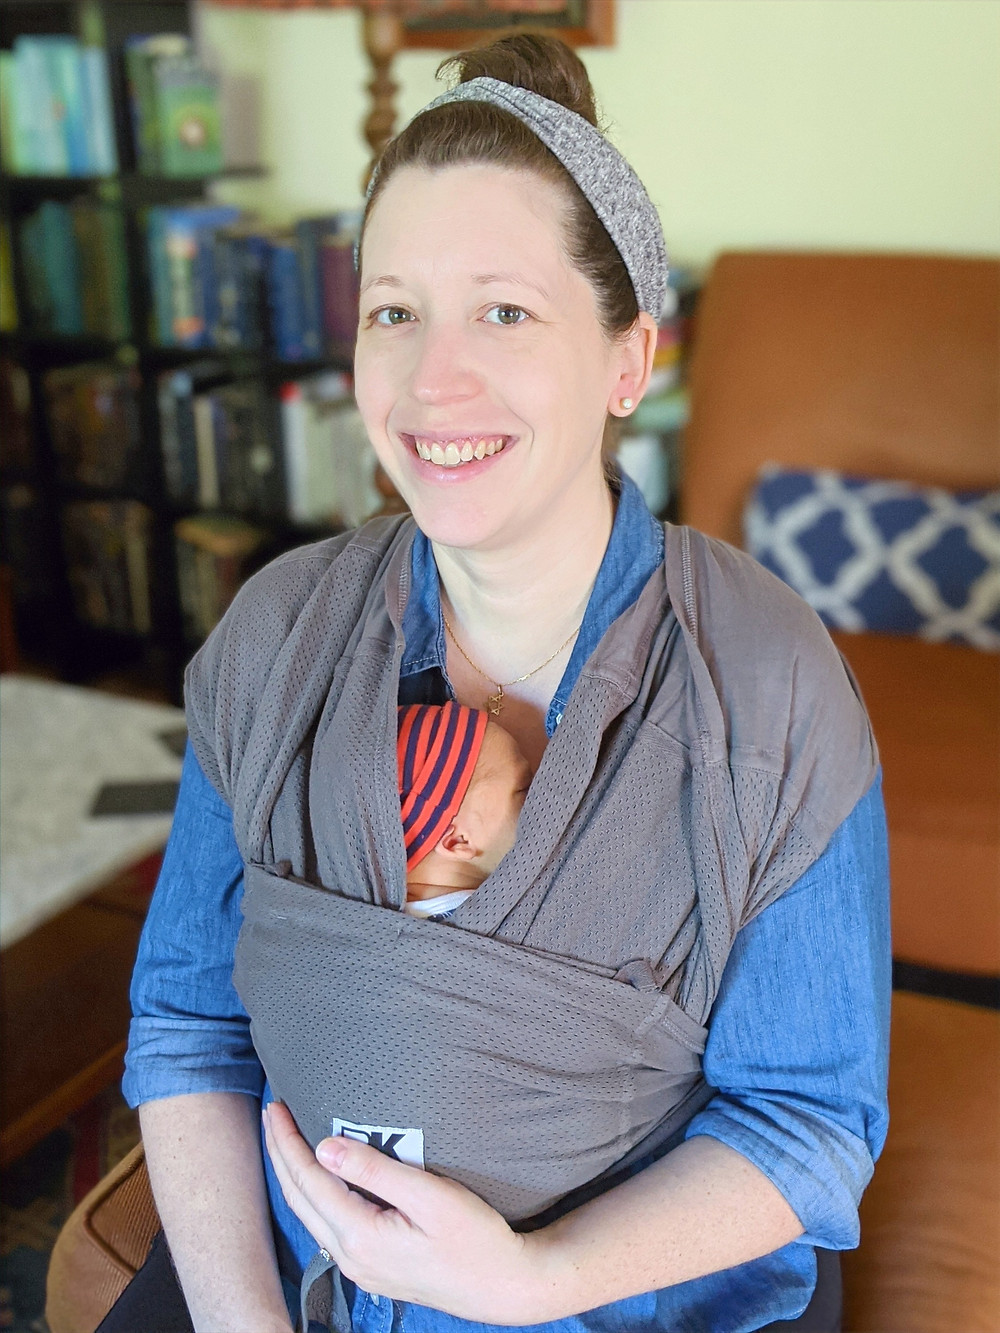 postpartum doula helps mom wrap baby in the carrier